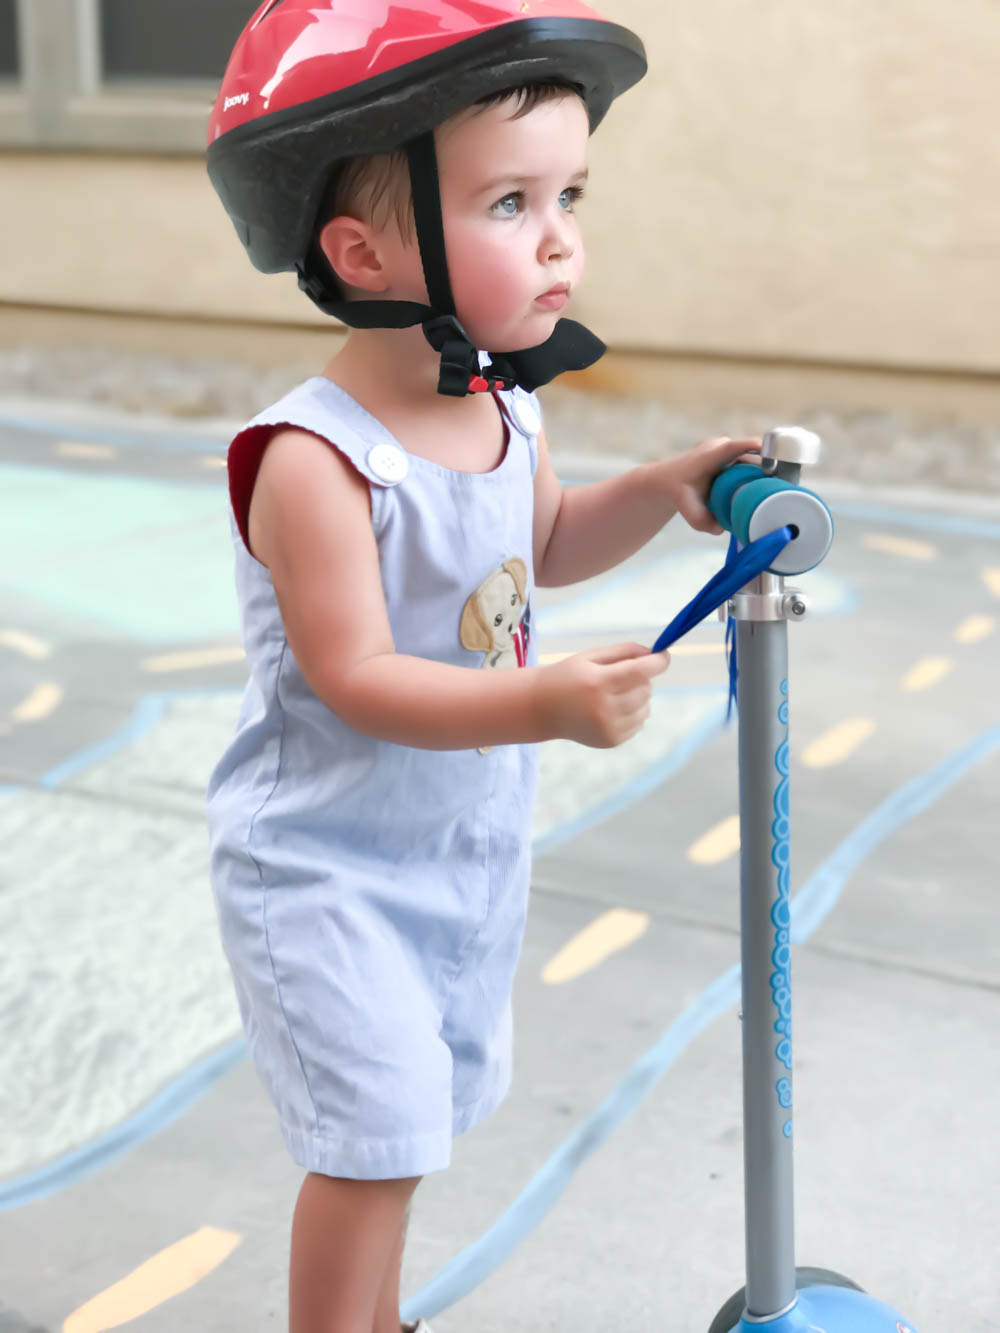 Driveway Chalk Scooter Racetrack | Toddler Imagination | Imaginative Play | Radio Flyer | #sponsored